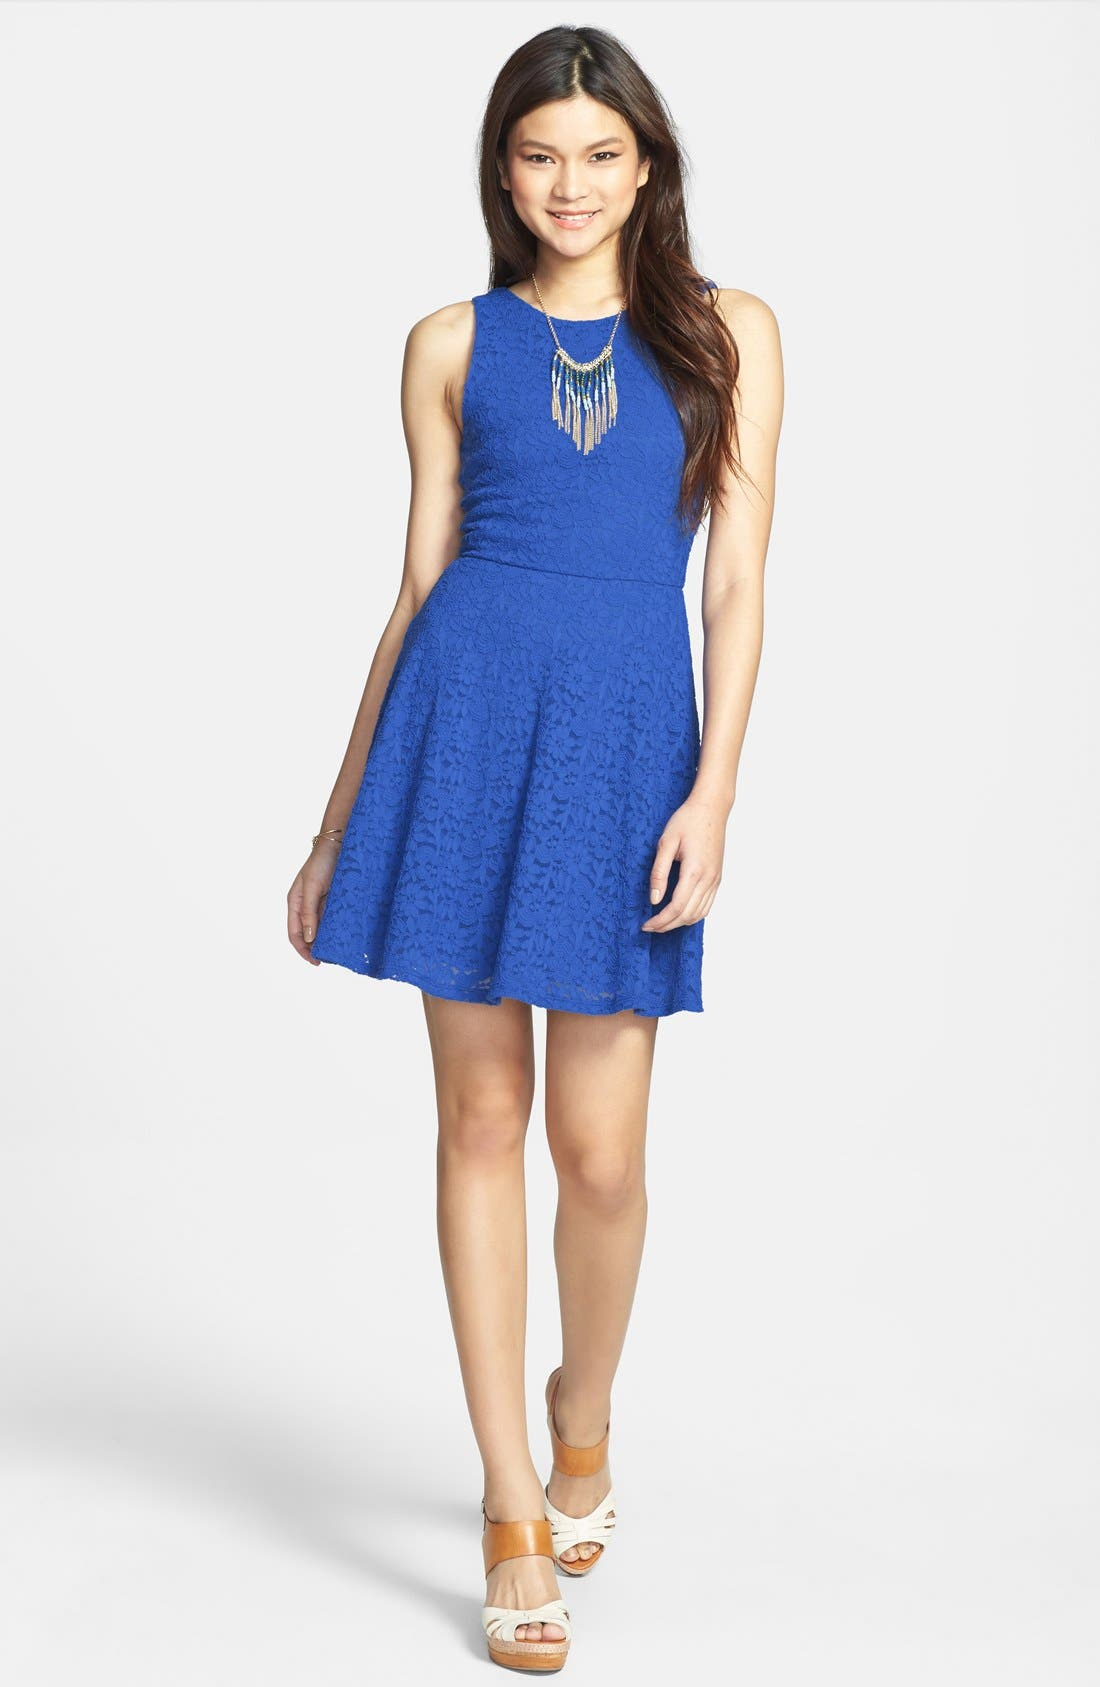 Alternate Image 1 Selected - Everly Lace Scoop Back Skater Dress (Juniors)